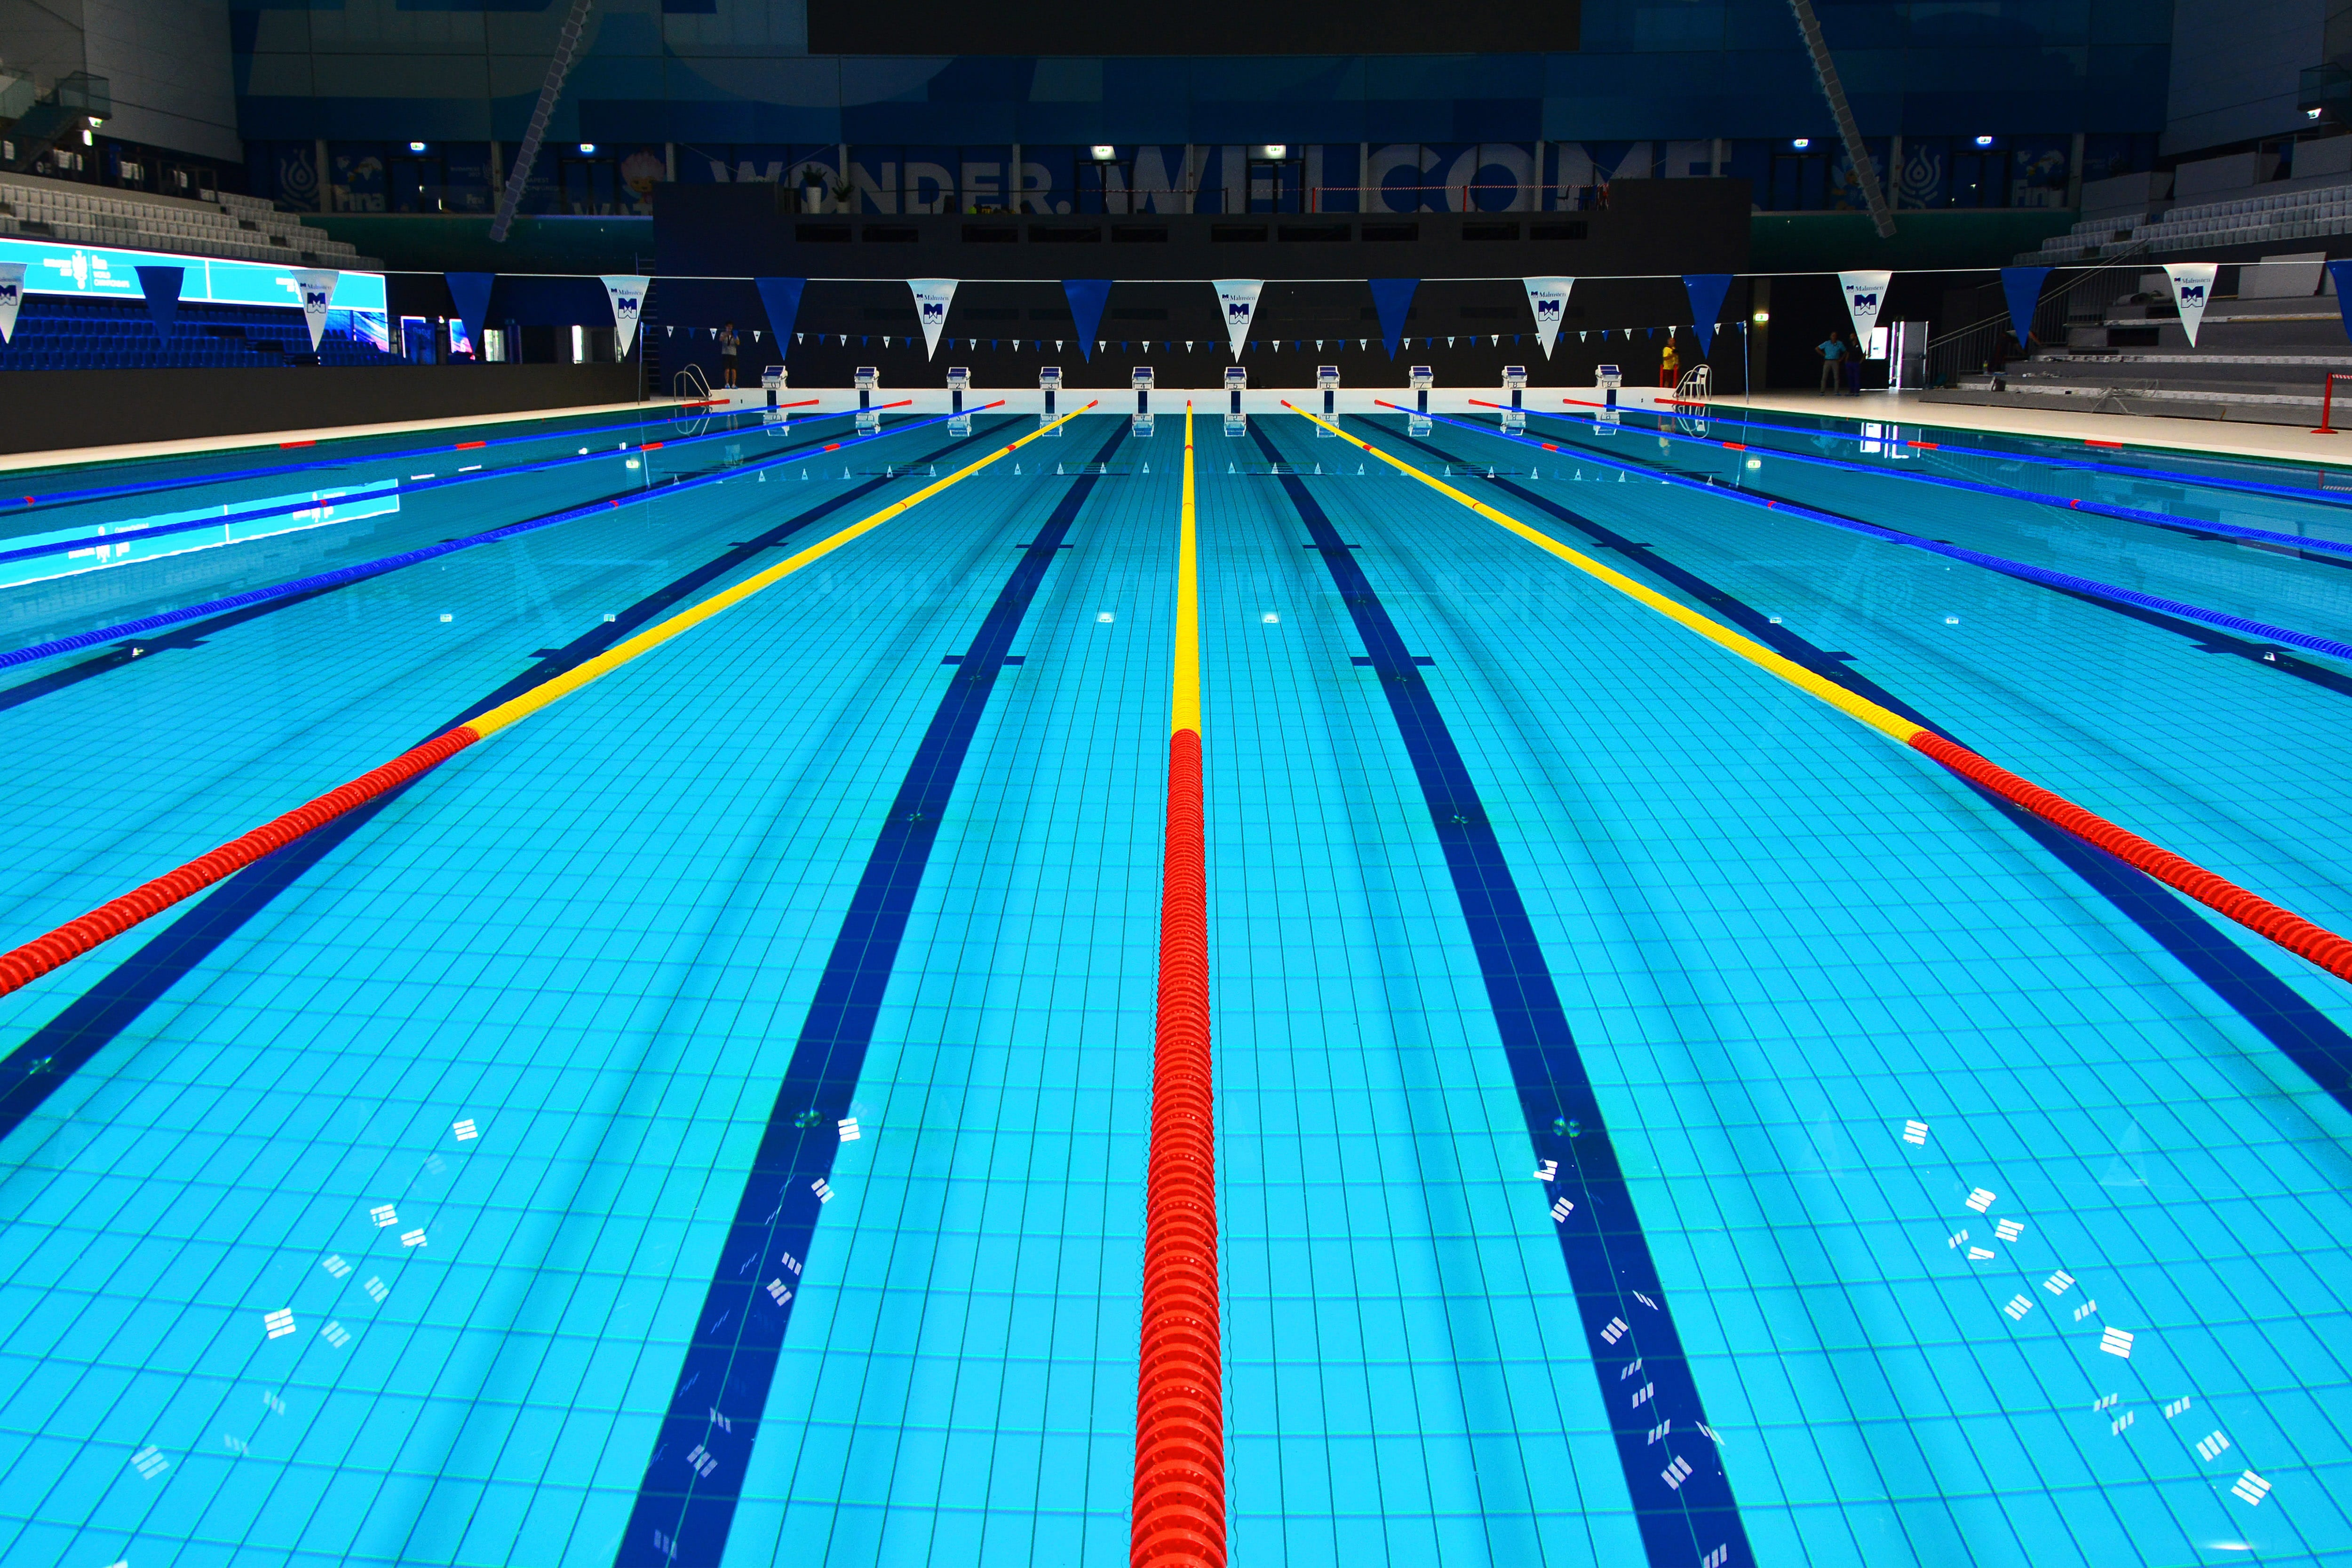 A photograph showing the length of an indoor swimming pool